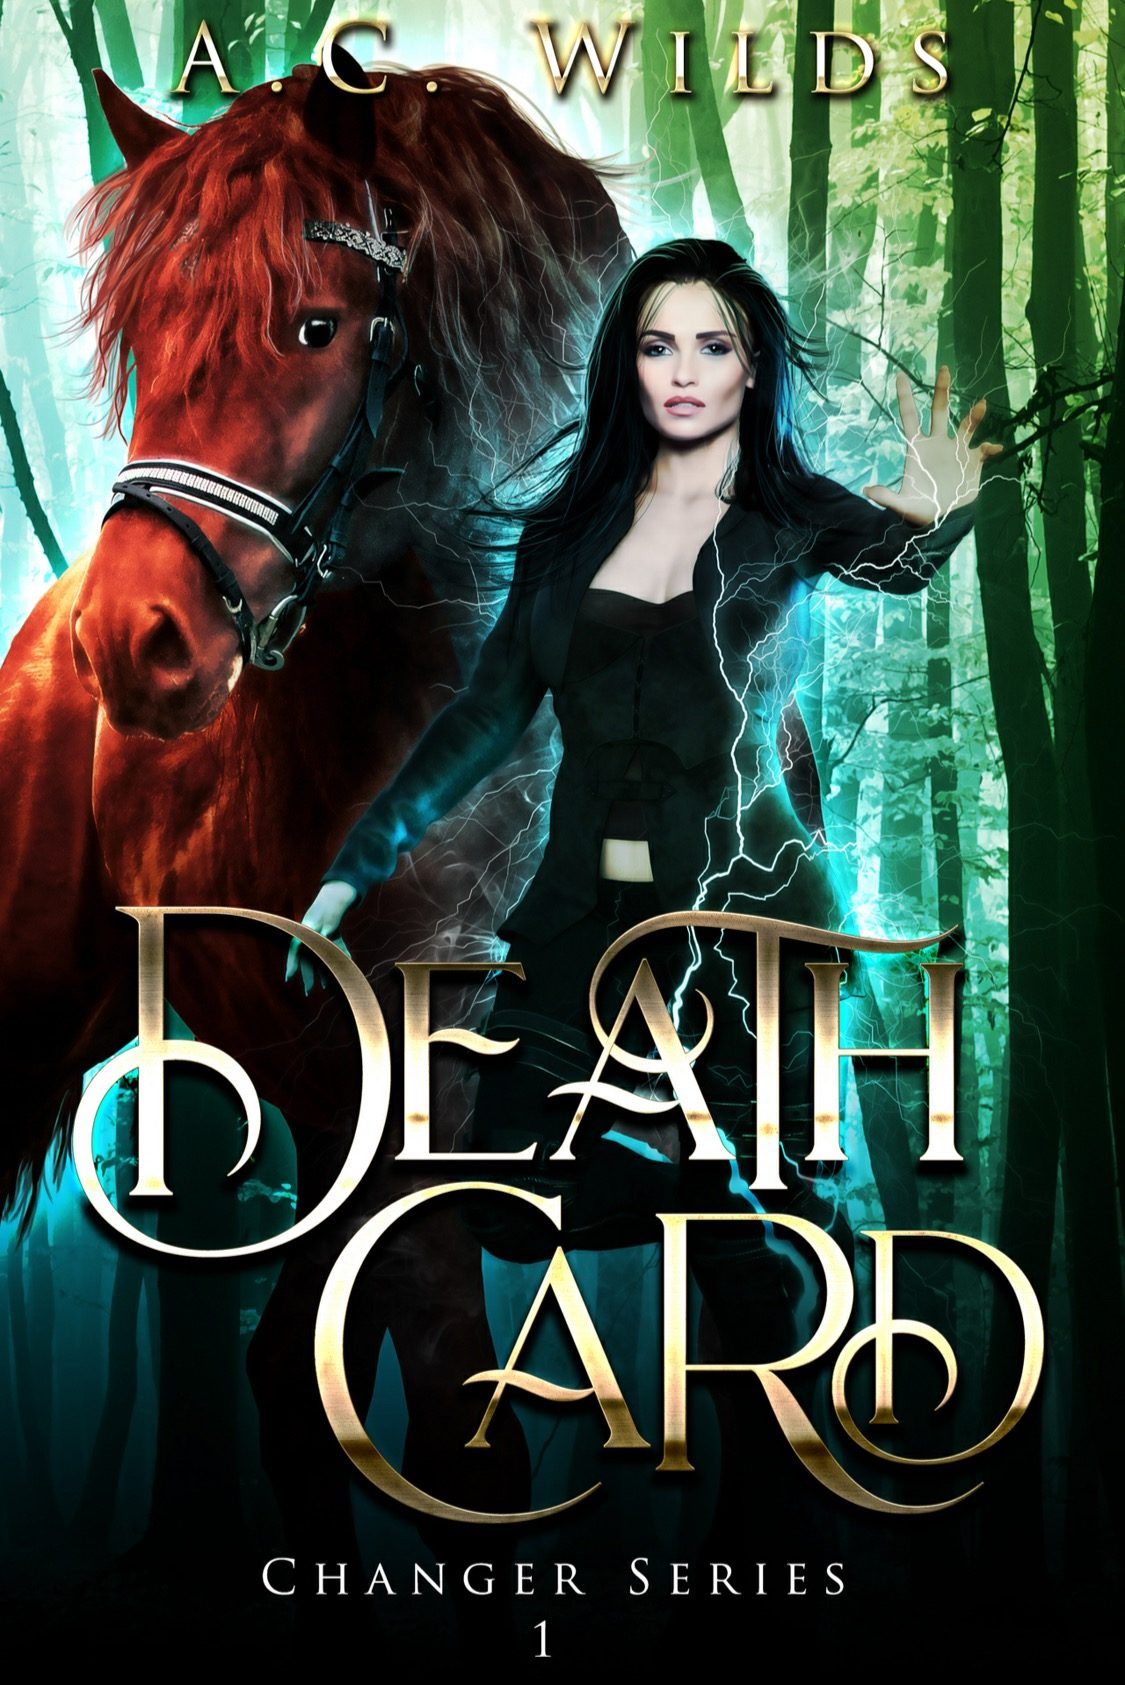 Death Card *Changer Series - Book 1* by A.C. Wilds - A Book Review #BookReview #NewSeries #NewRelease #PNR #WhyChoose #RH #Fae #GreatCover